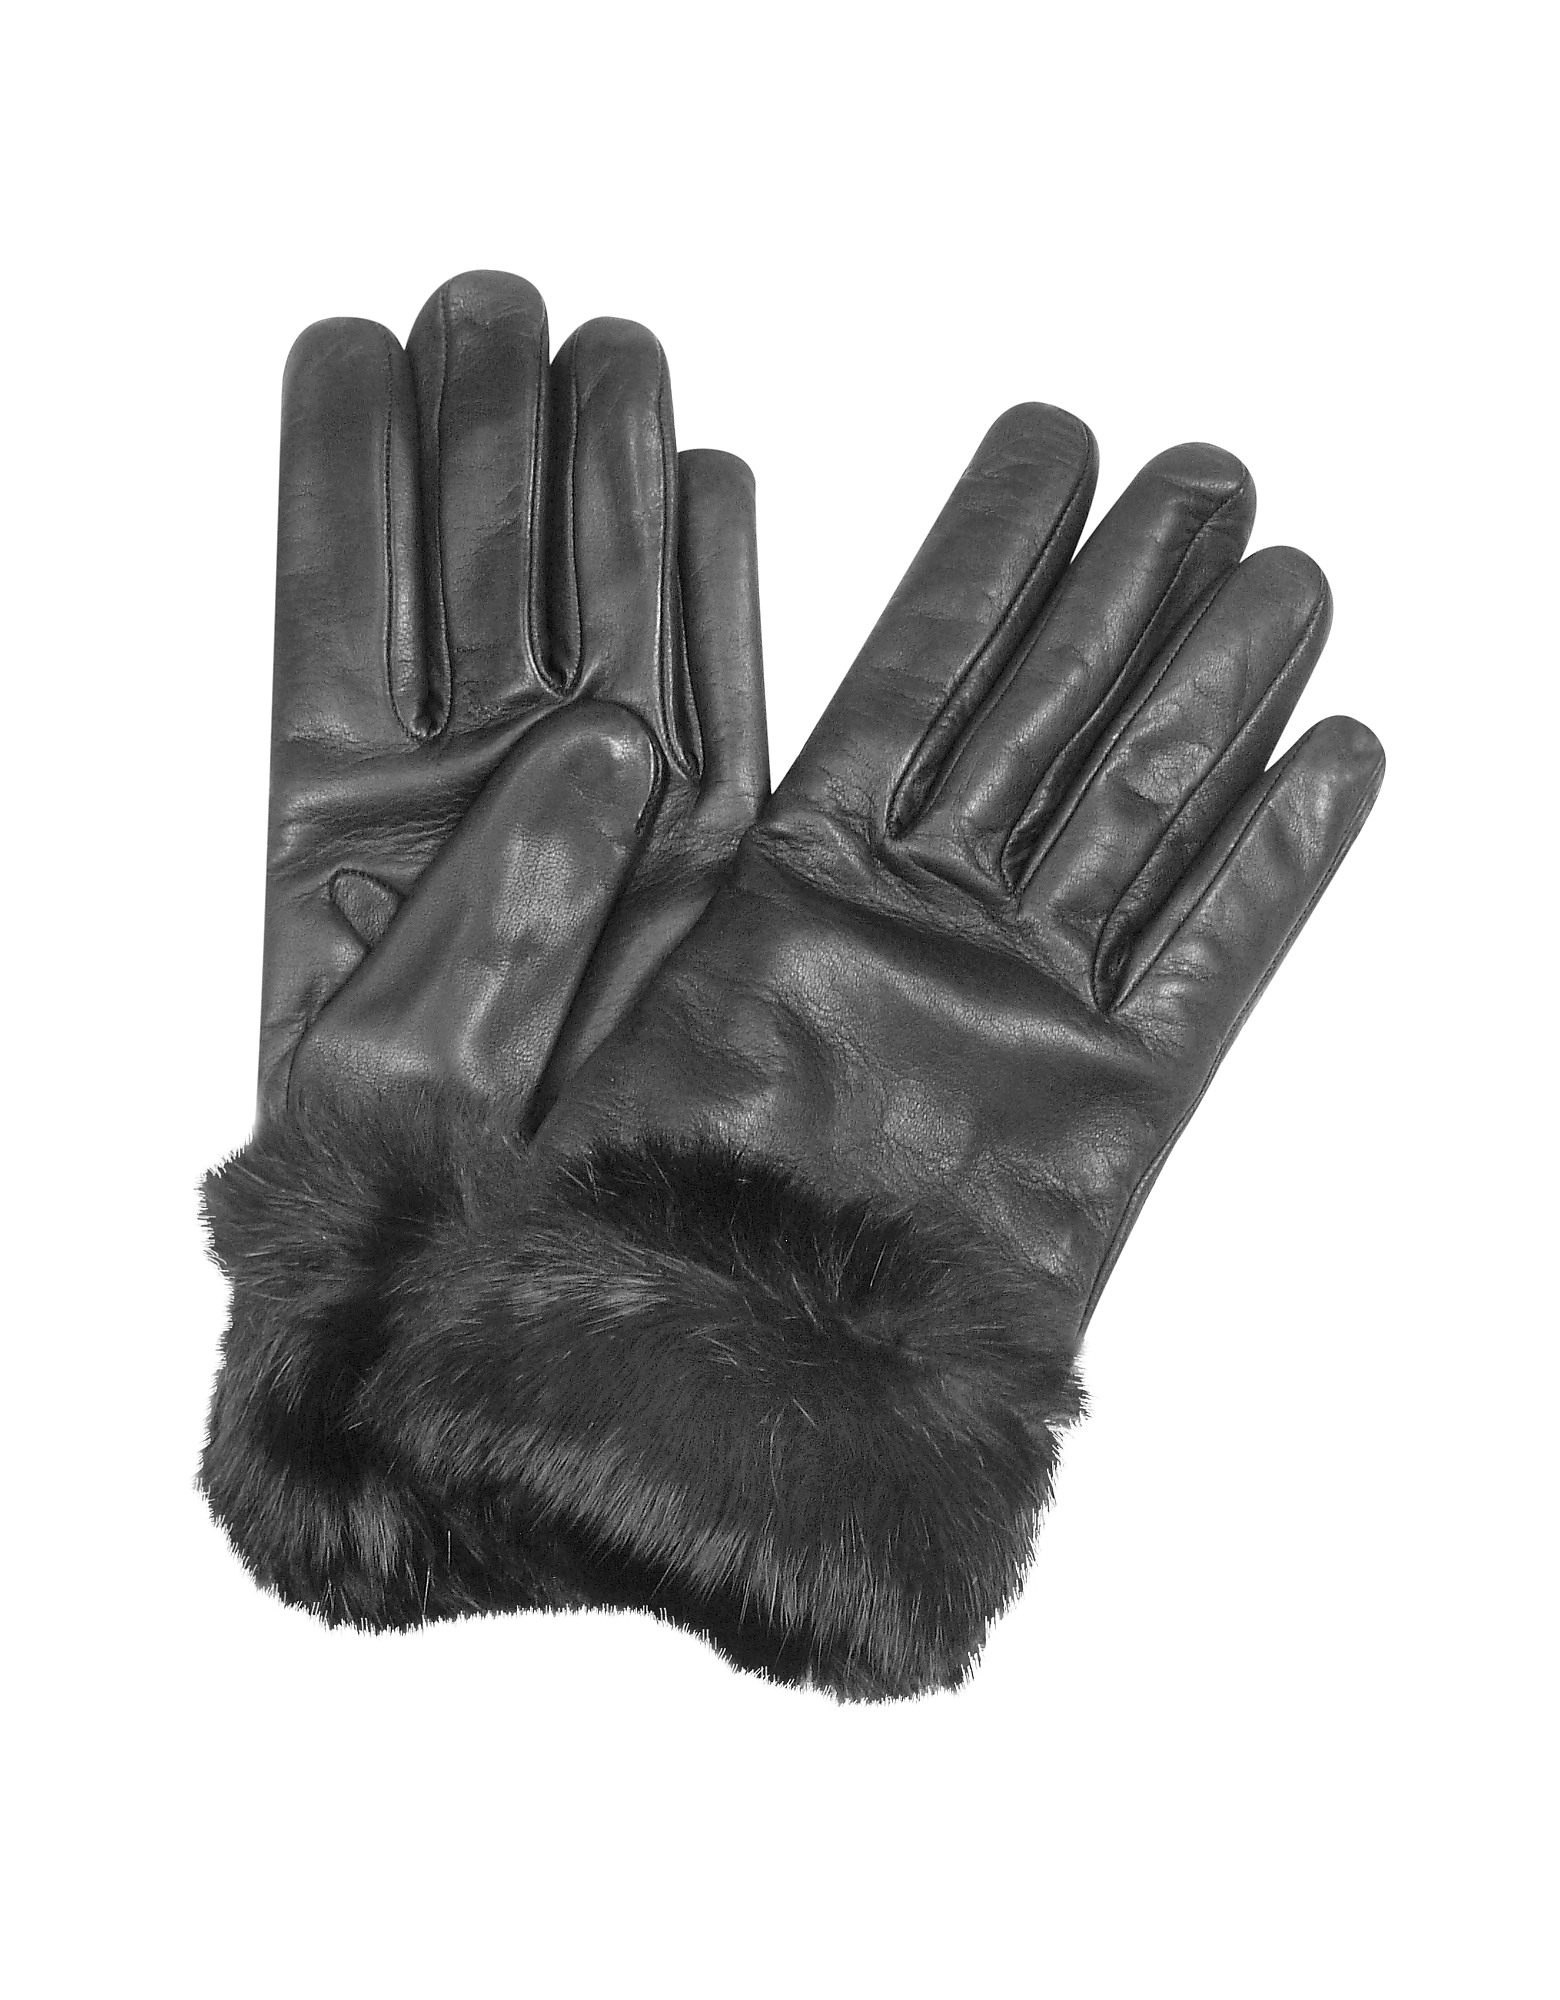 Forzieri Designer Women's Gloves, Black Cashmere Lined Italian Leather Gloves with Fur